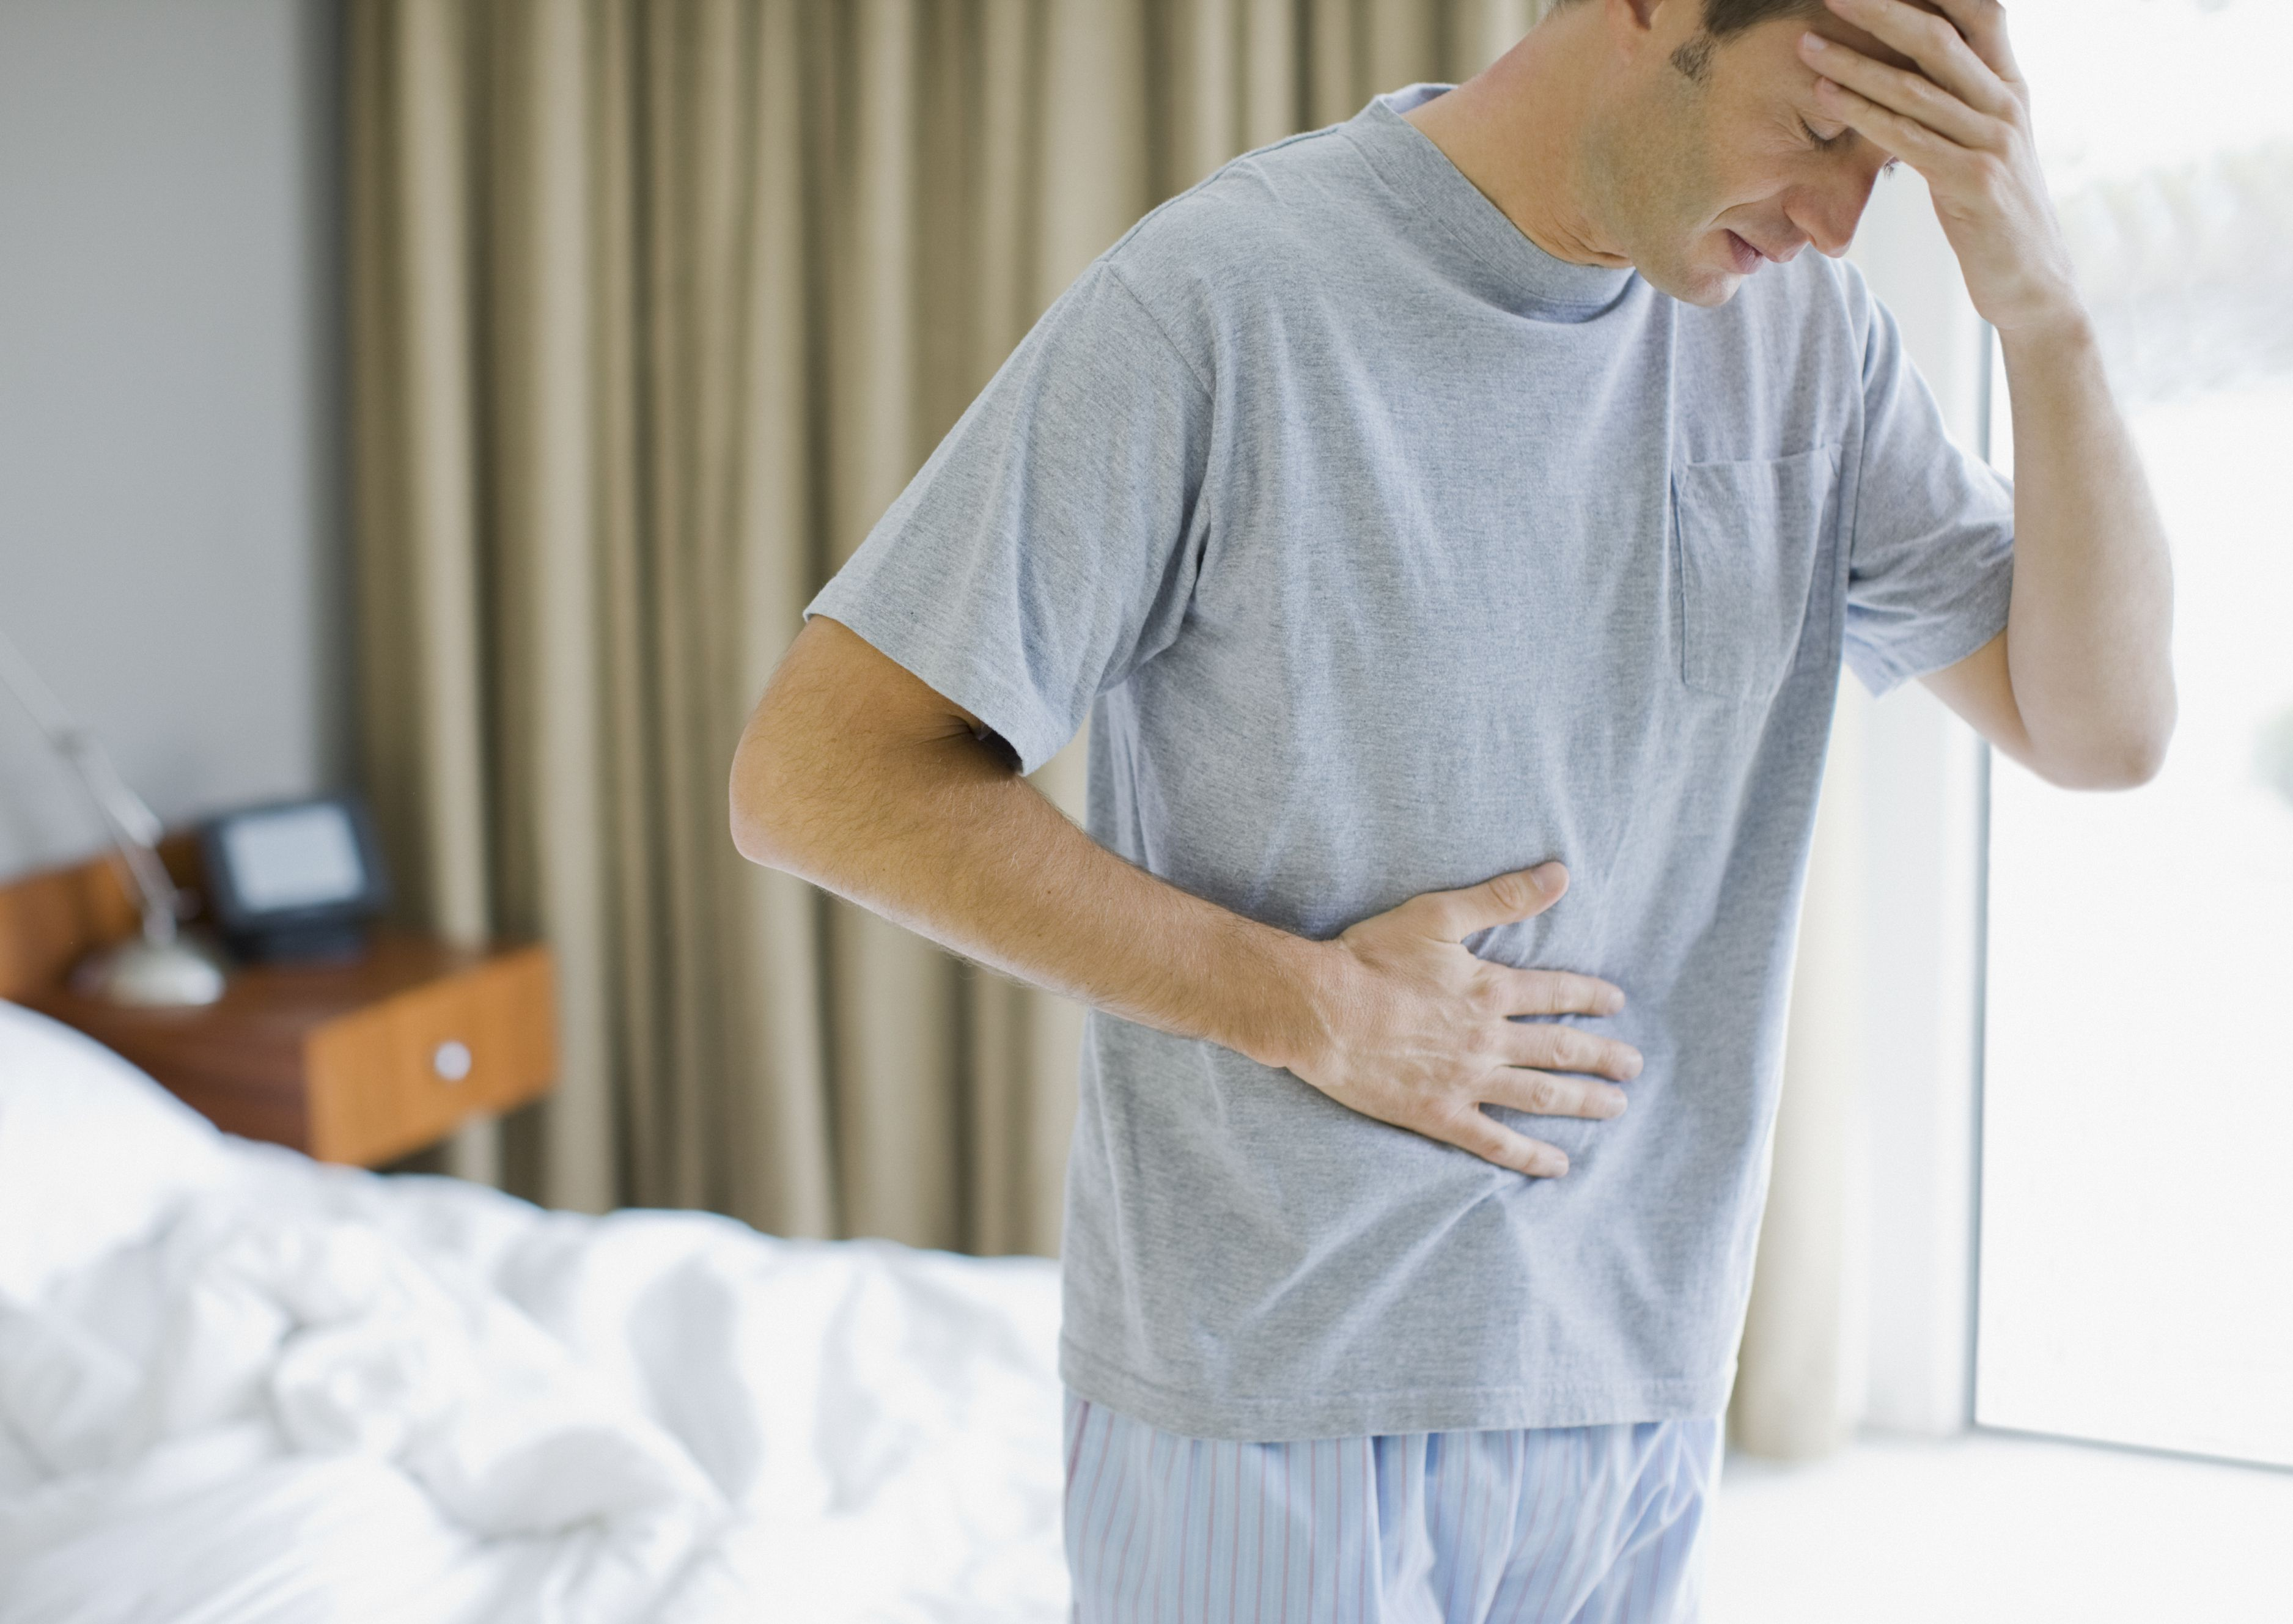 Self-Care and Recovery After a Colonoscopy